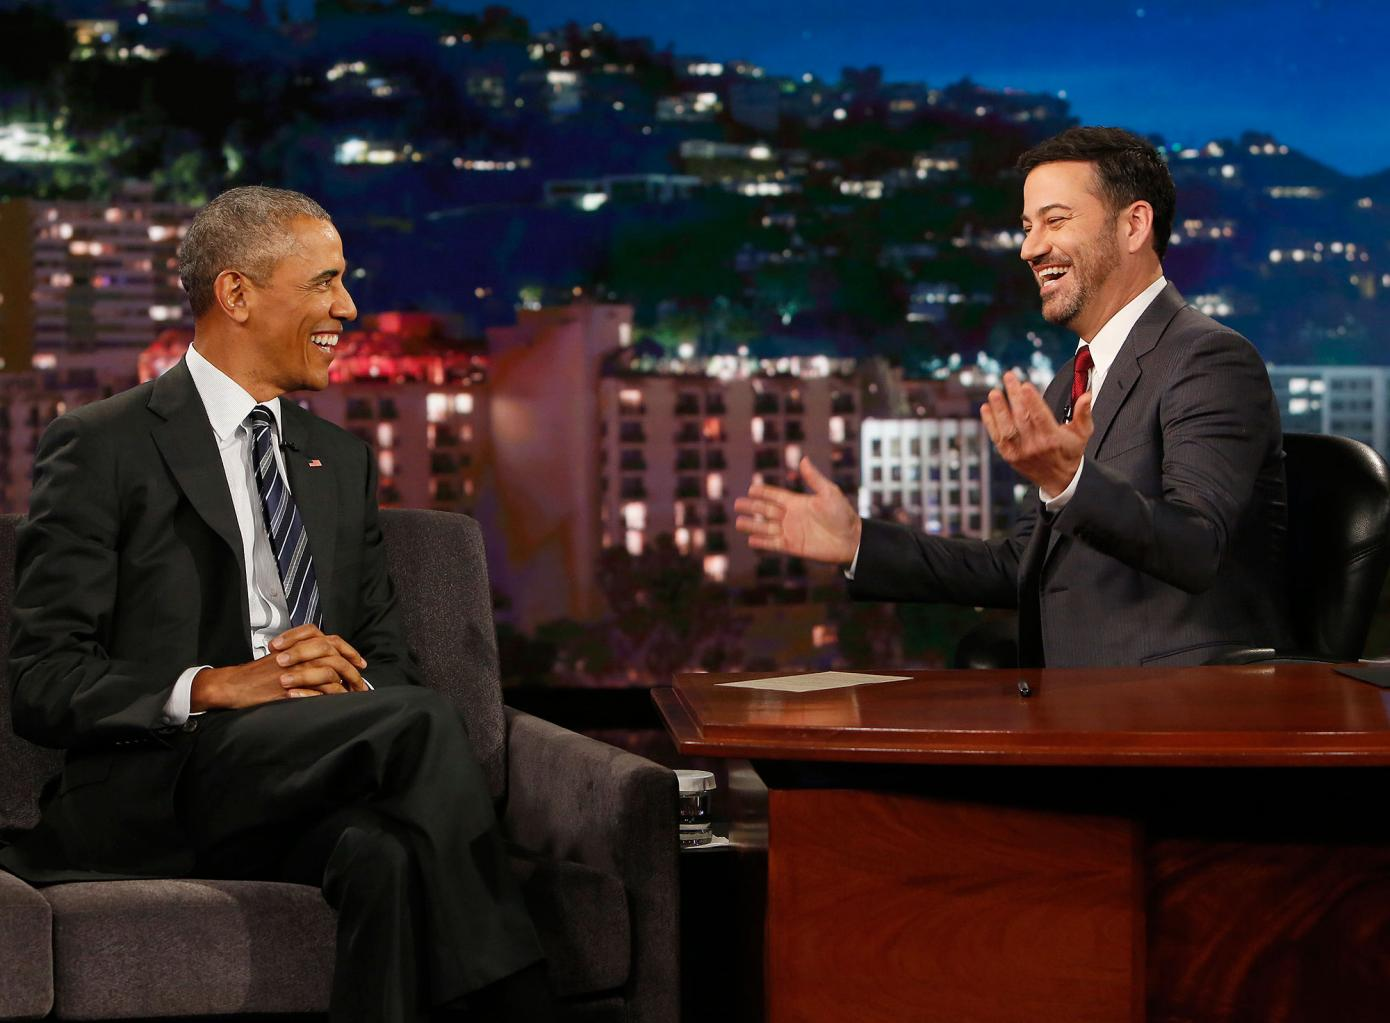 President Obama Says He Laughs        Most of the Time      '  At Donald Trump